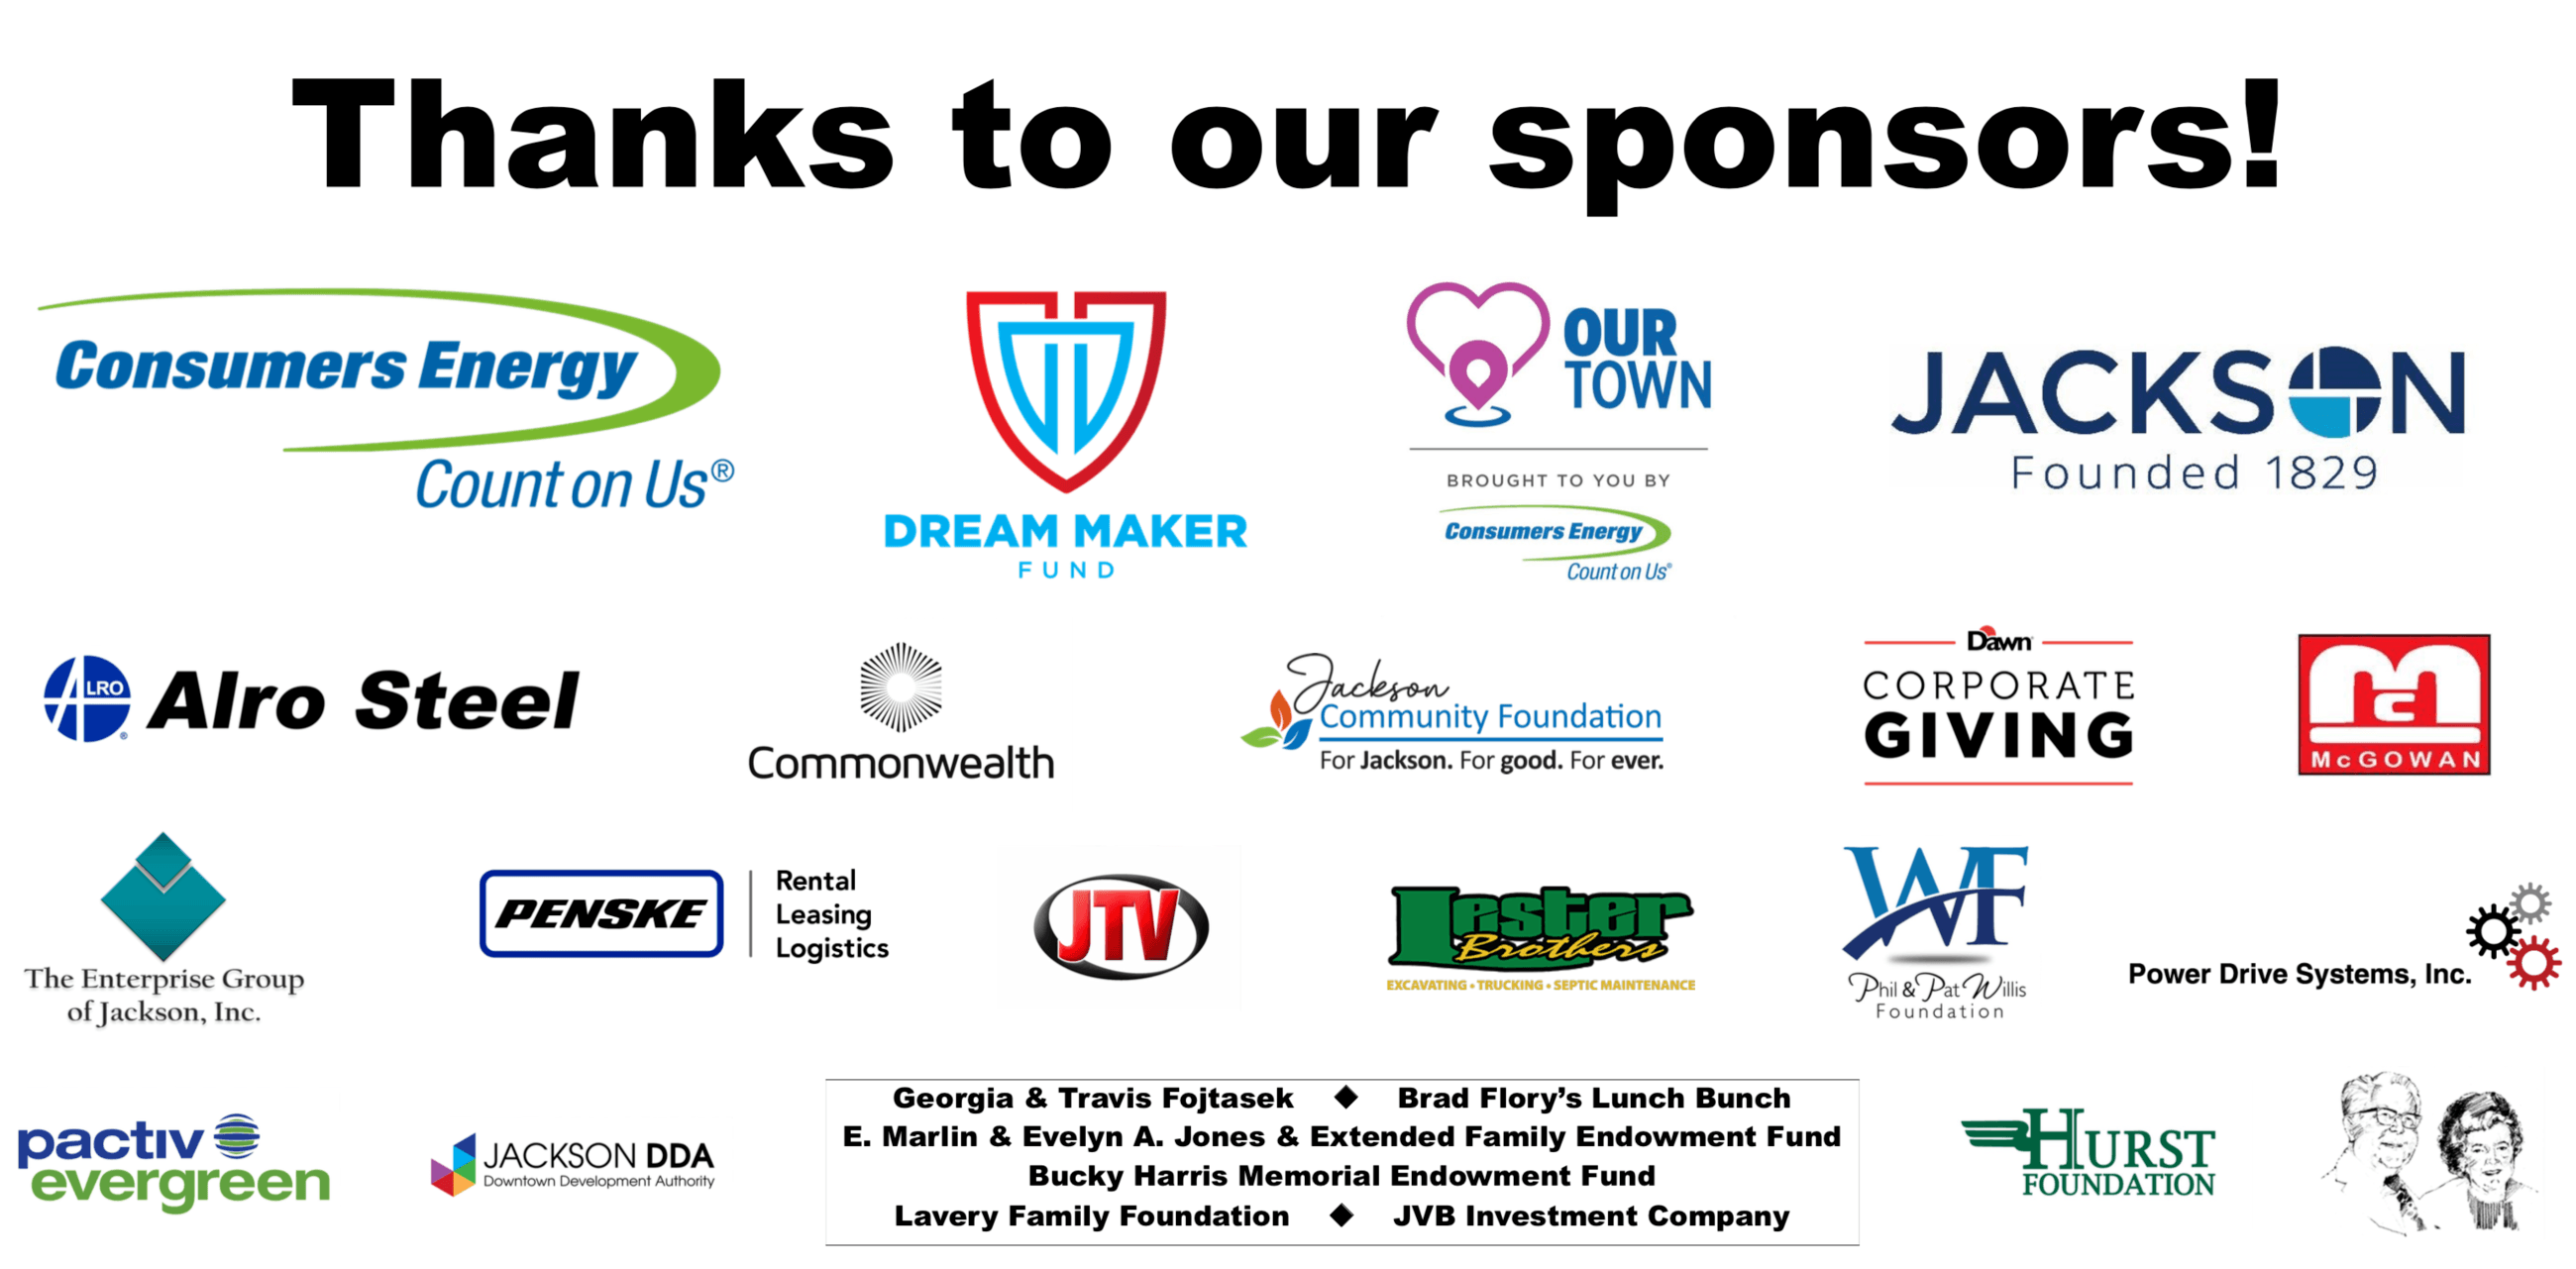 our town sponsors